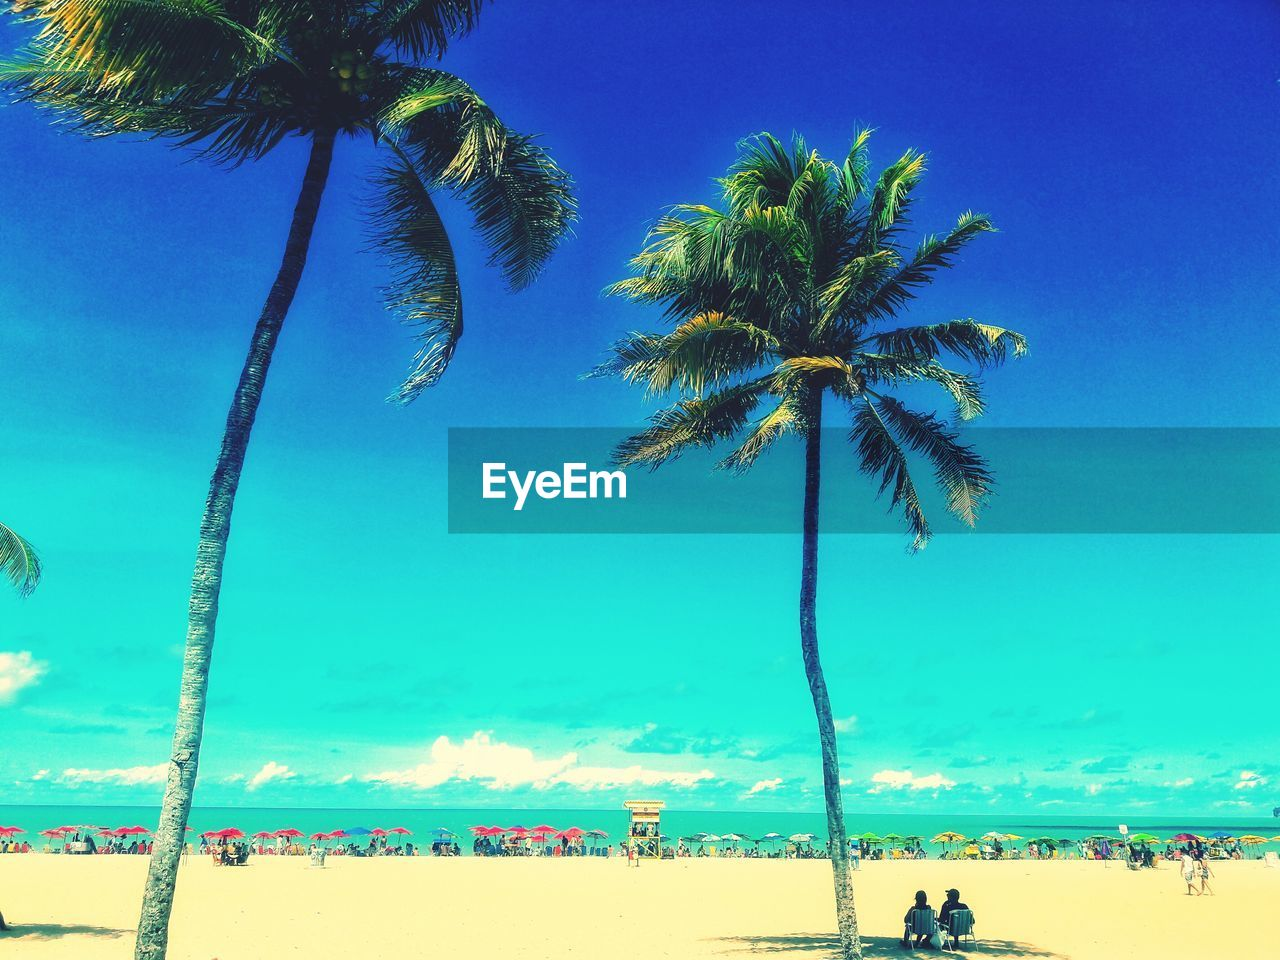 tropical climate, palm tree, tree, sky, plant, beach, land, coconut palm tree, blue, sea, nature, water, beauty in nature, growth, trunk, tree trunk, scenics - nature, sand, tranquility, day, tropical tree, outdoors, tall - high, no people, horizon over water, turquoise colored, palm leaf